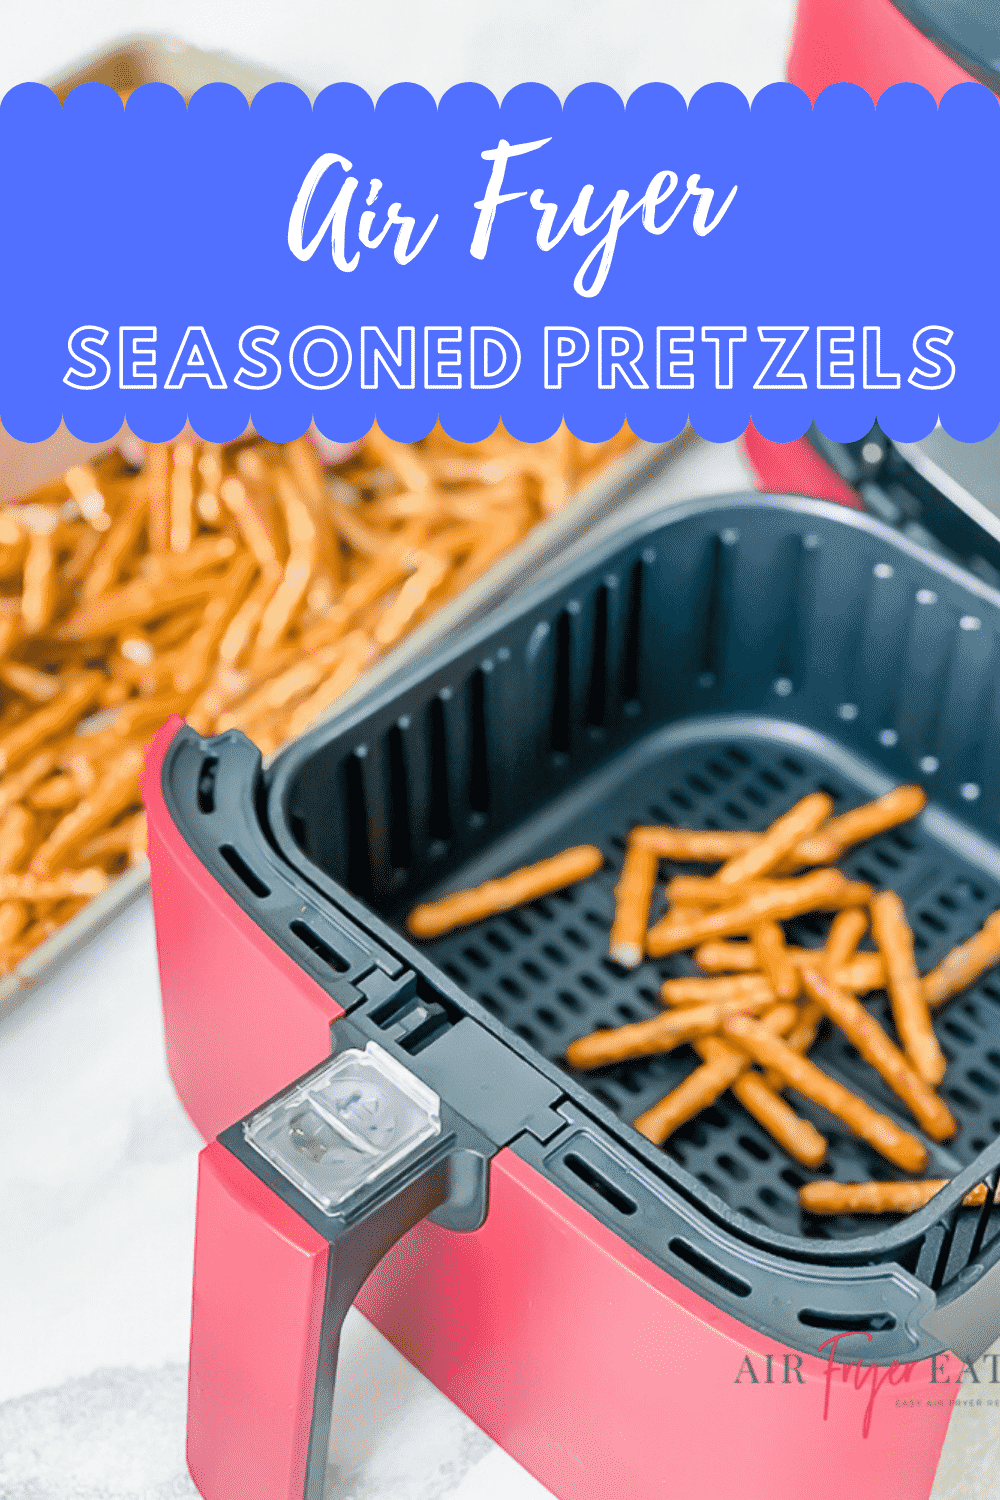 Calling all snackers! This seasoned air fryer pretzels recipe will make all snack lovers rejoice with happiness! At last, an easy seasoned pretzel recipe that will turn non-snackers into snack-a-holics when they taste these ranch pretzels. via @vegetarianmamma